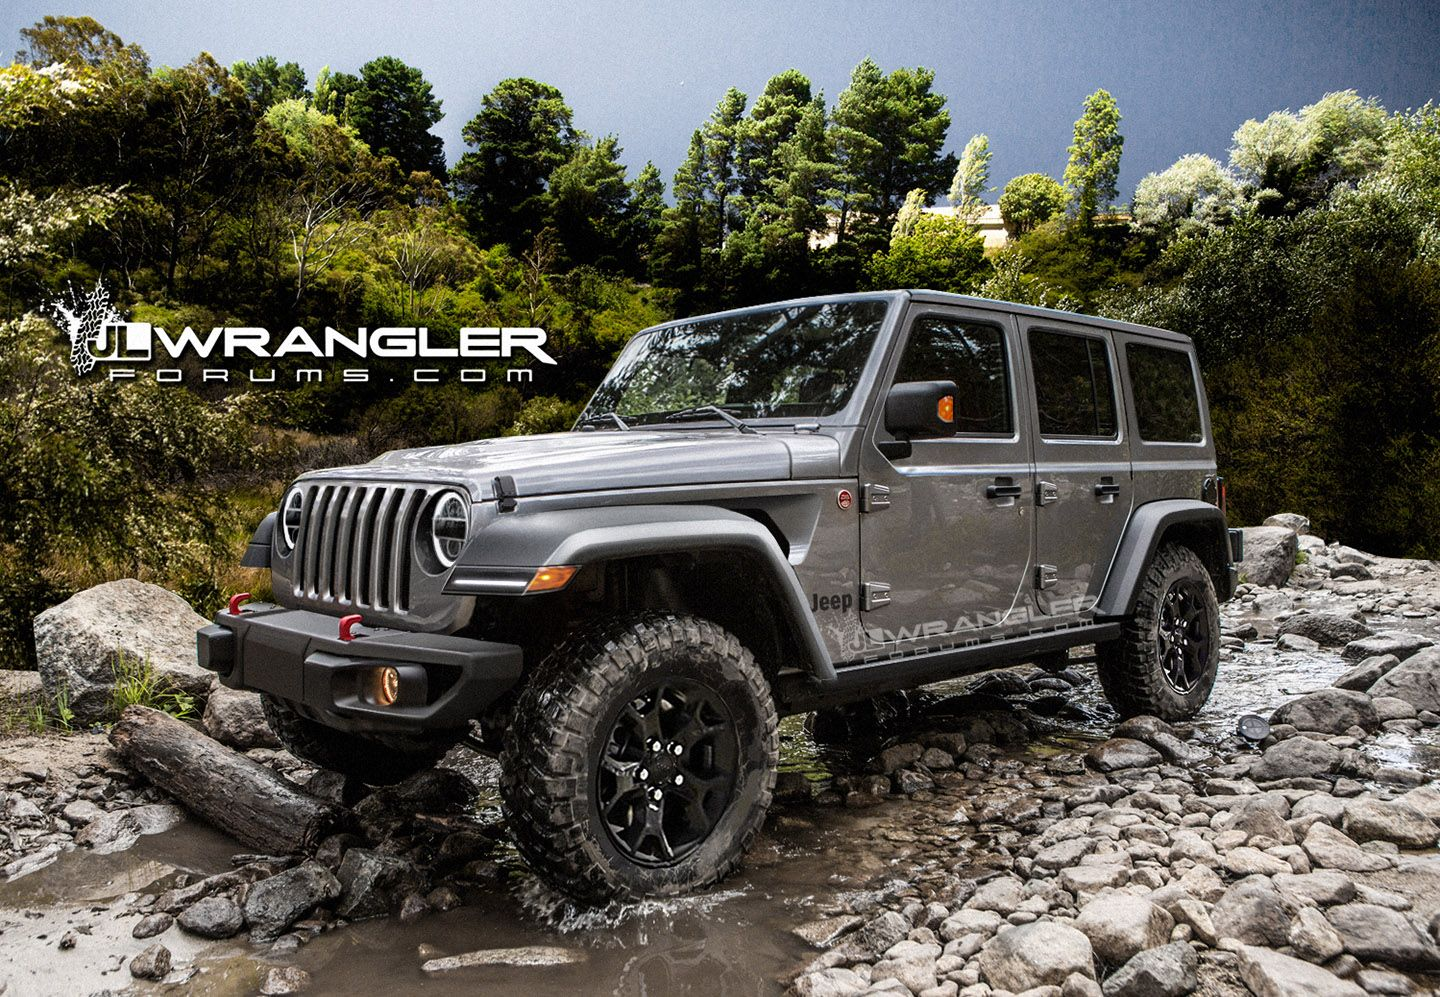 Just Another Render Of 2018 Jeep Wrangler Jlu Rubicon We Guess That 2018 Jeep Wrangler Jlu New Jeep Wrangler 2018 Jeep Wrangler Unlimited Jeep Wrangler Pickup